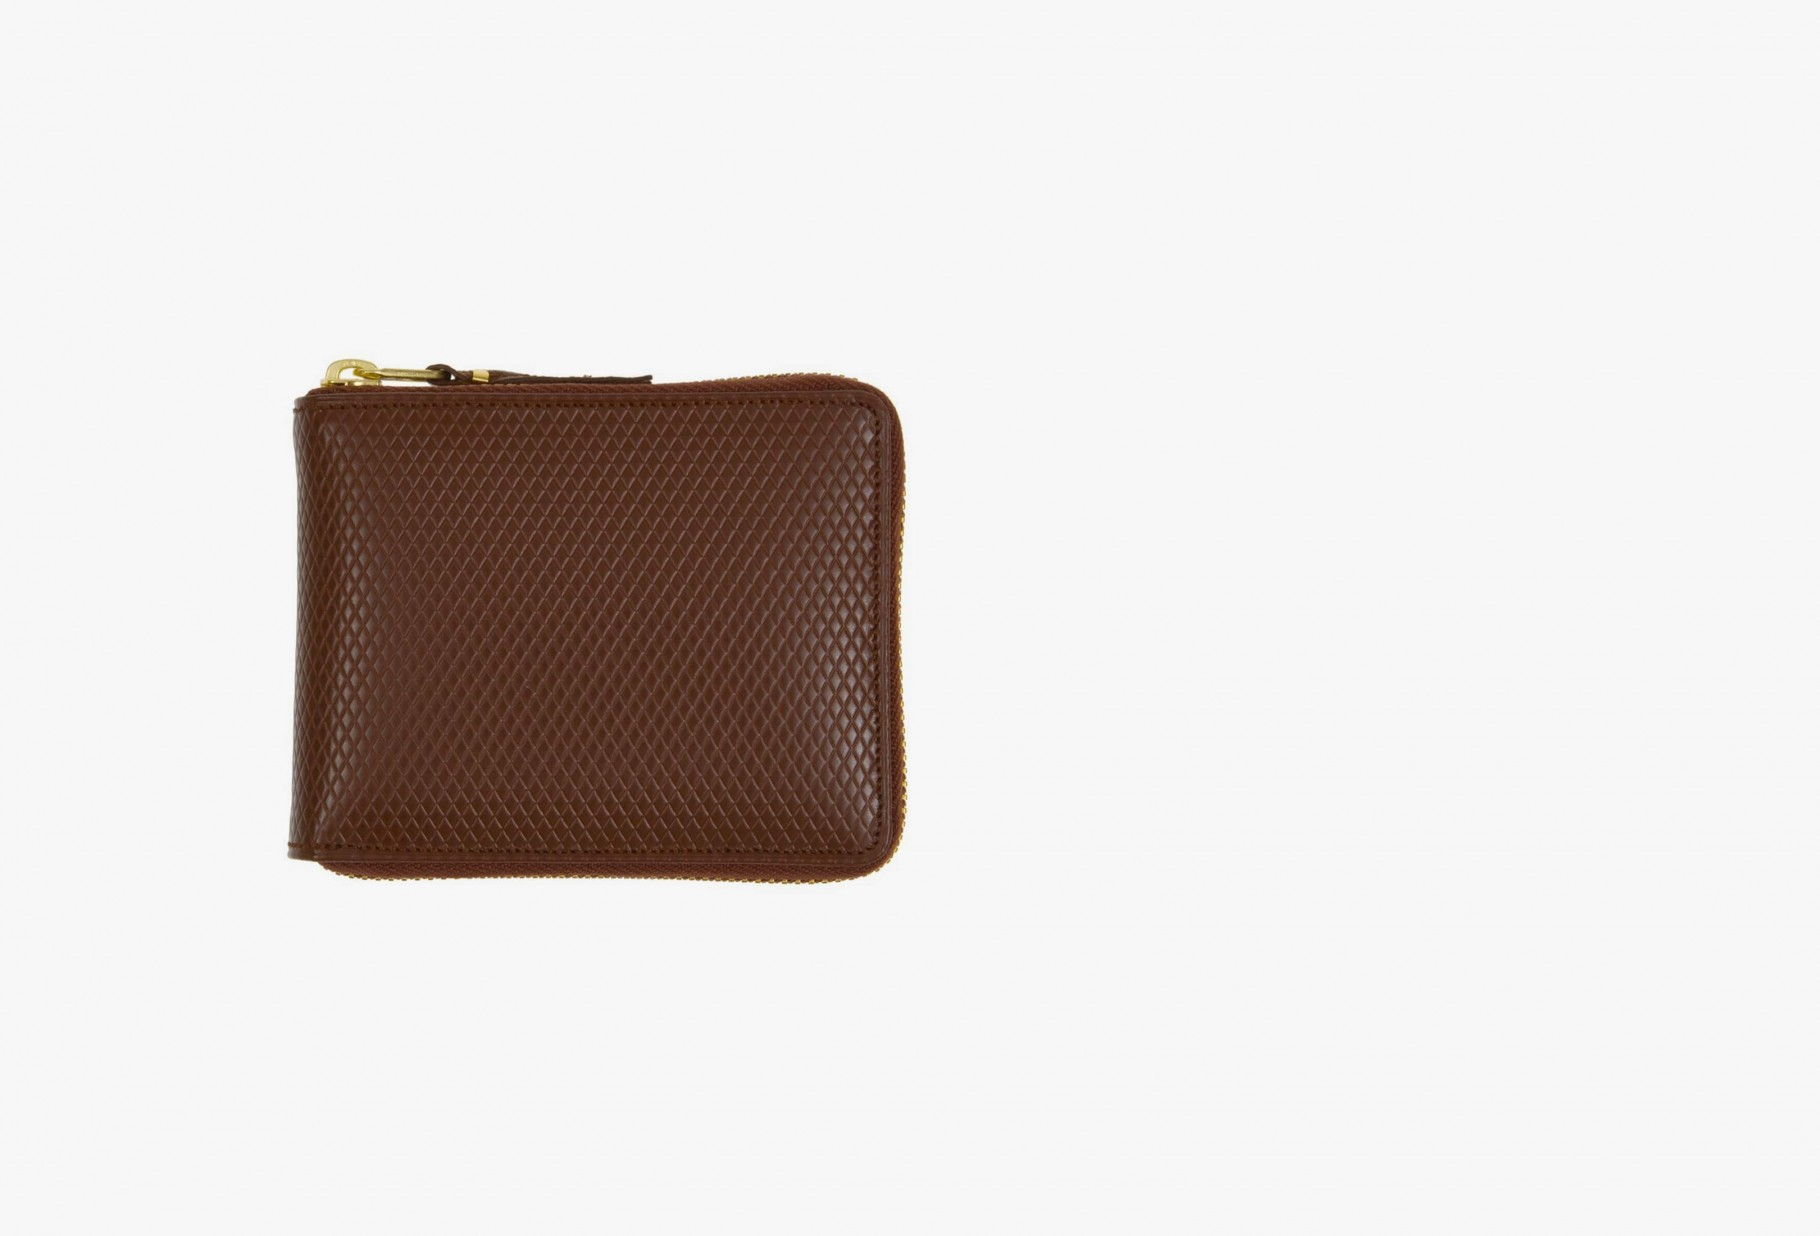 CDG WALLETS / Cdg luxury group sa7100lg Brown